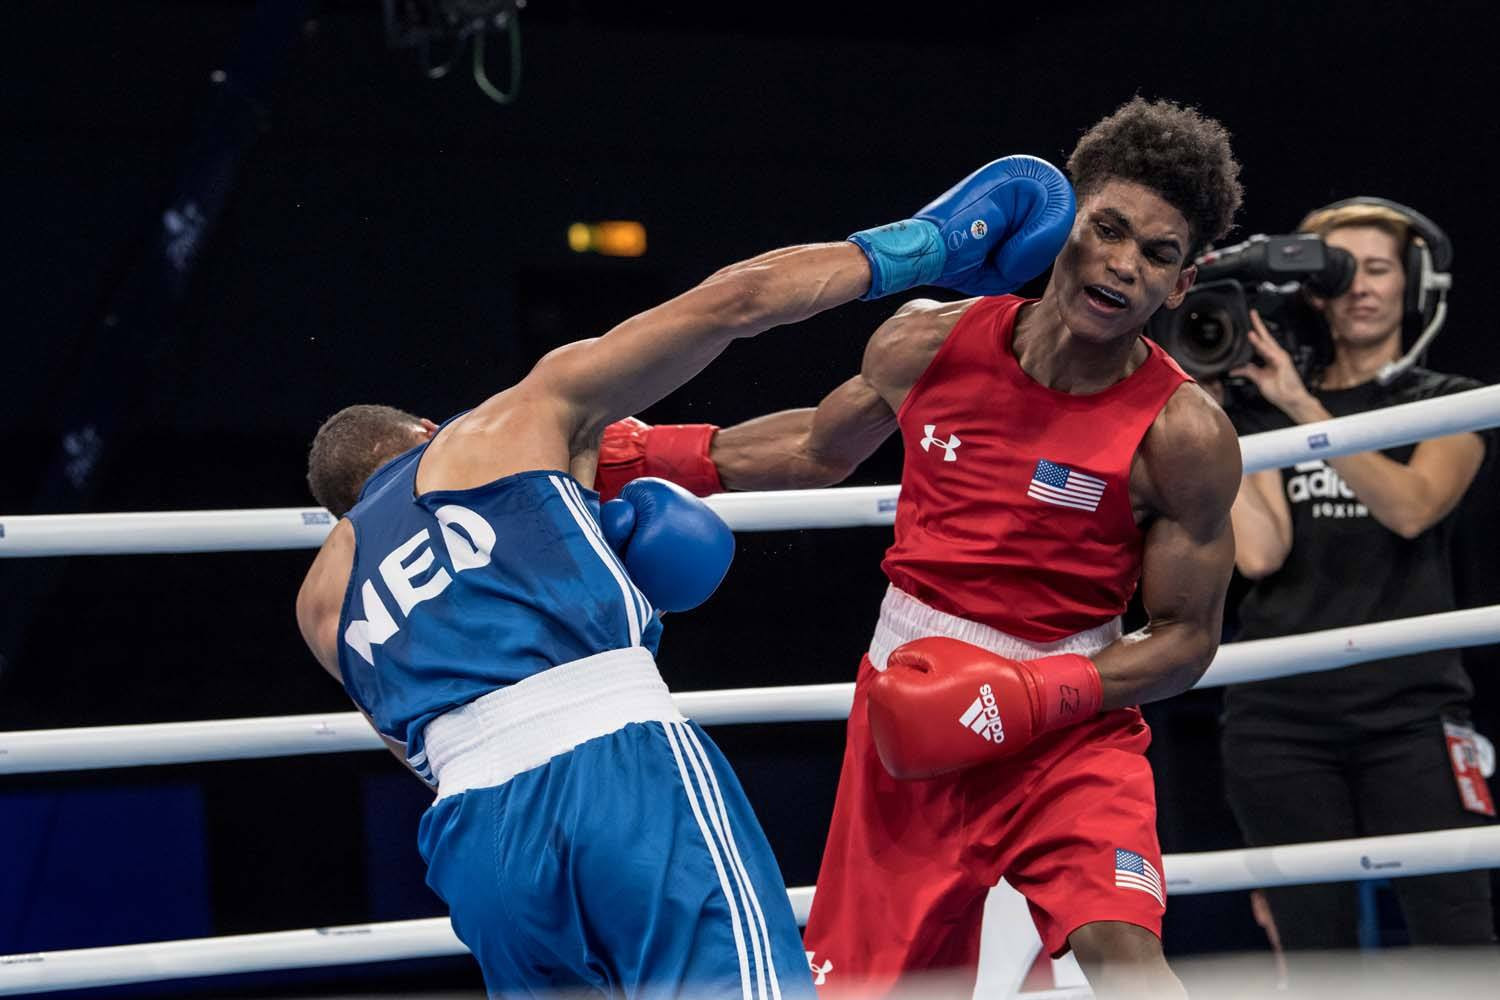 insidethegames is reporting LIVE from the AIBA World Boxing Championships in Hamburg